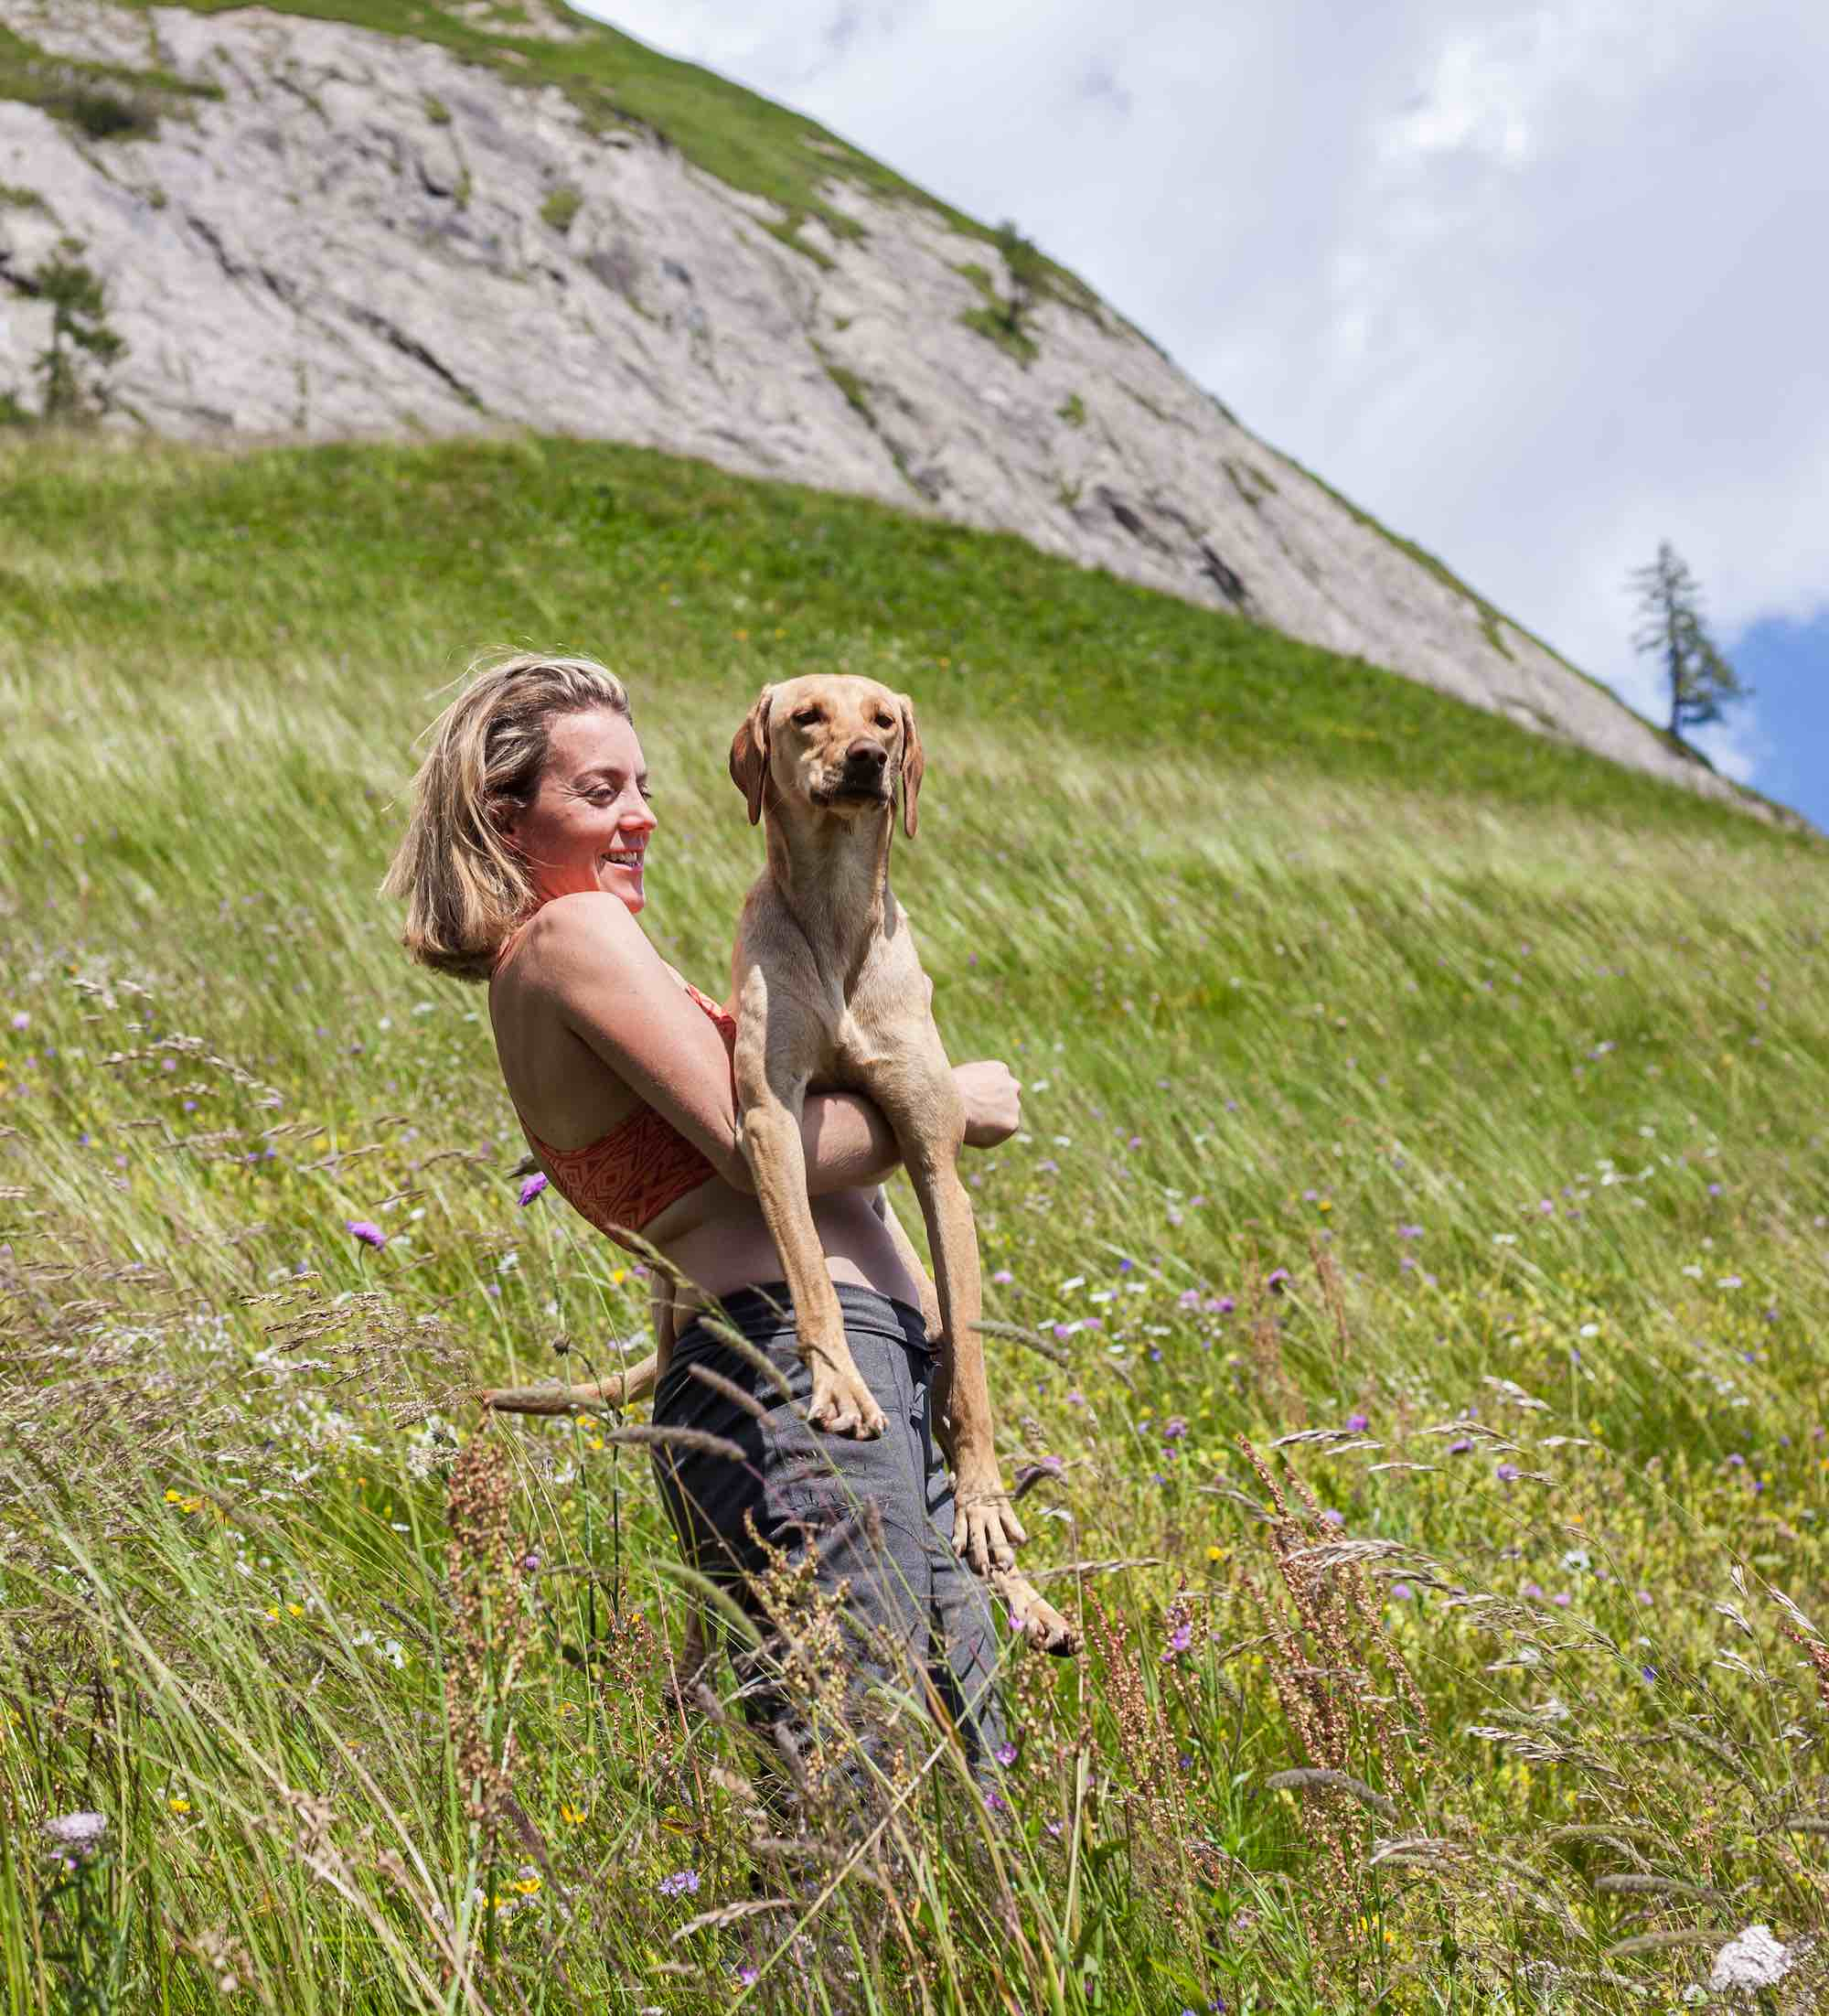 Lottie hiking in East Tyrol